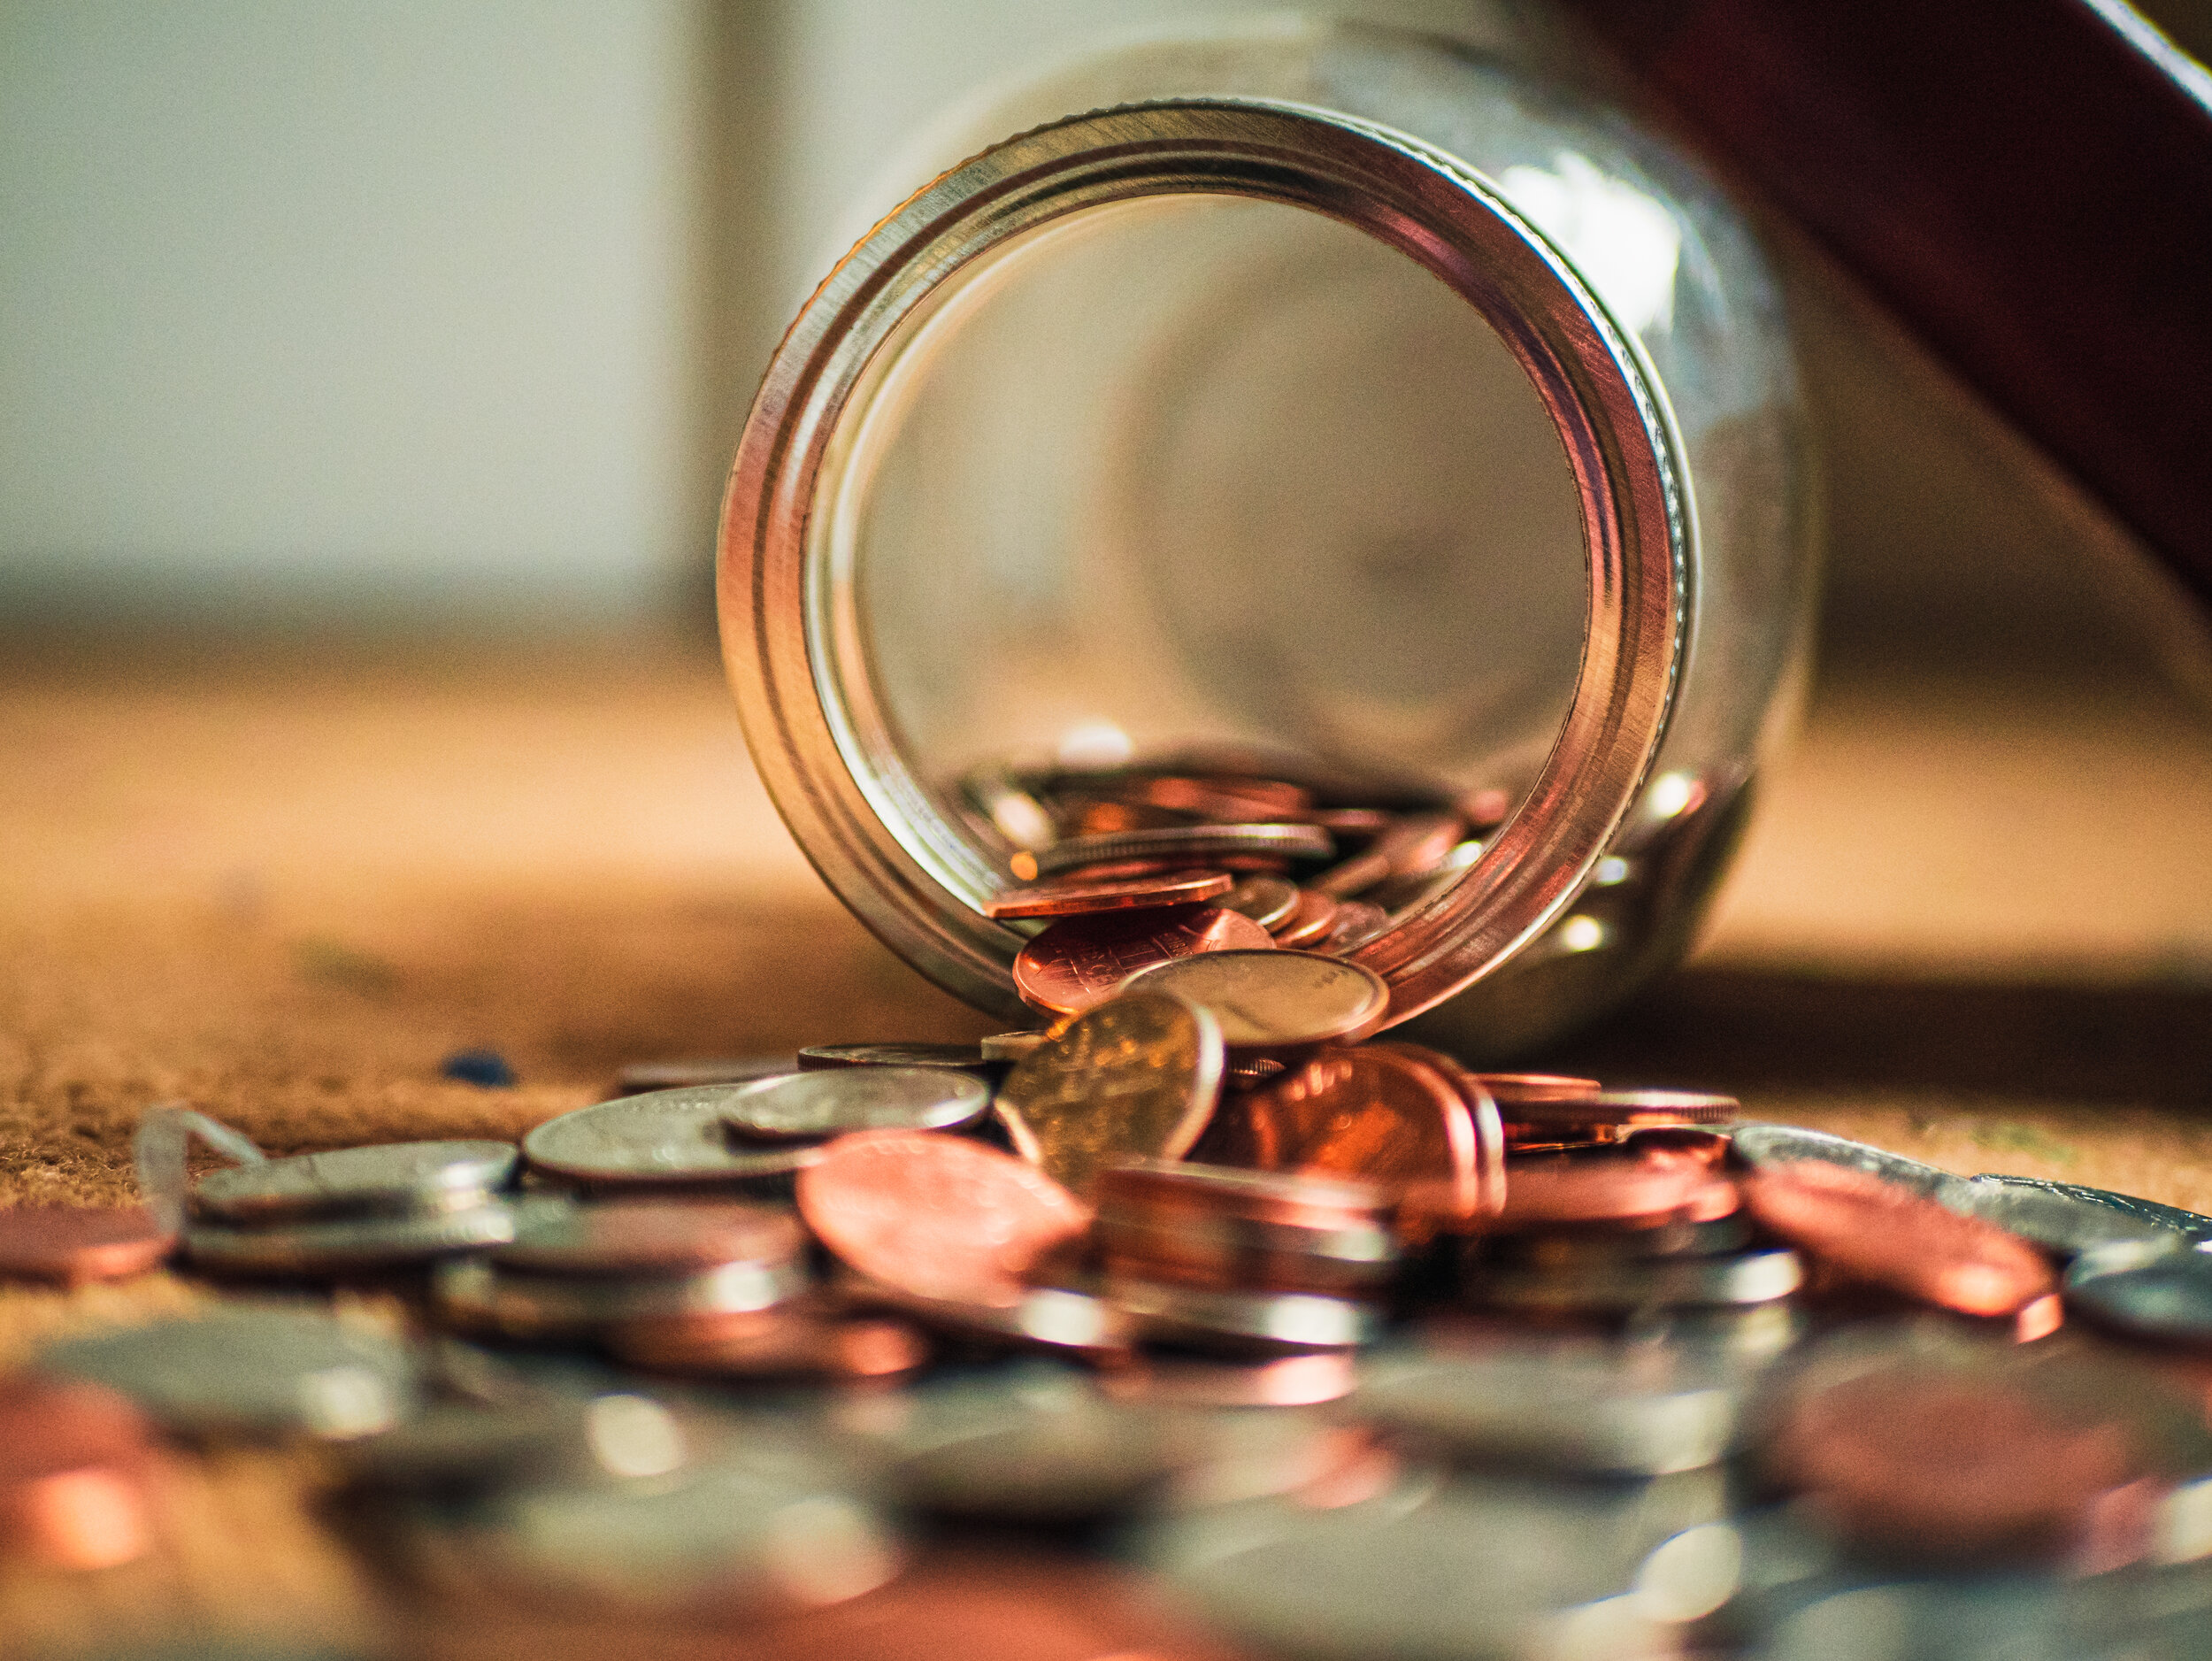 Finding the coins needed for a specific value is a common problem that can be solved with dynamic programming.